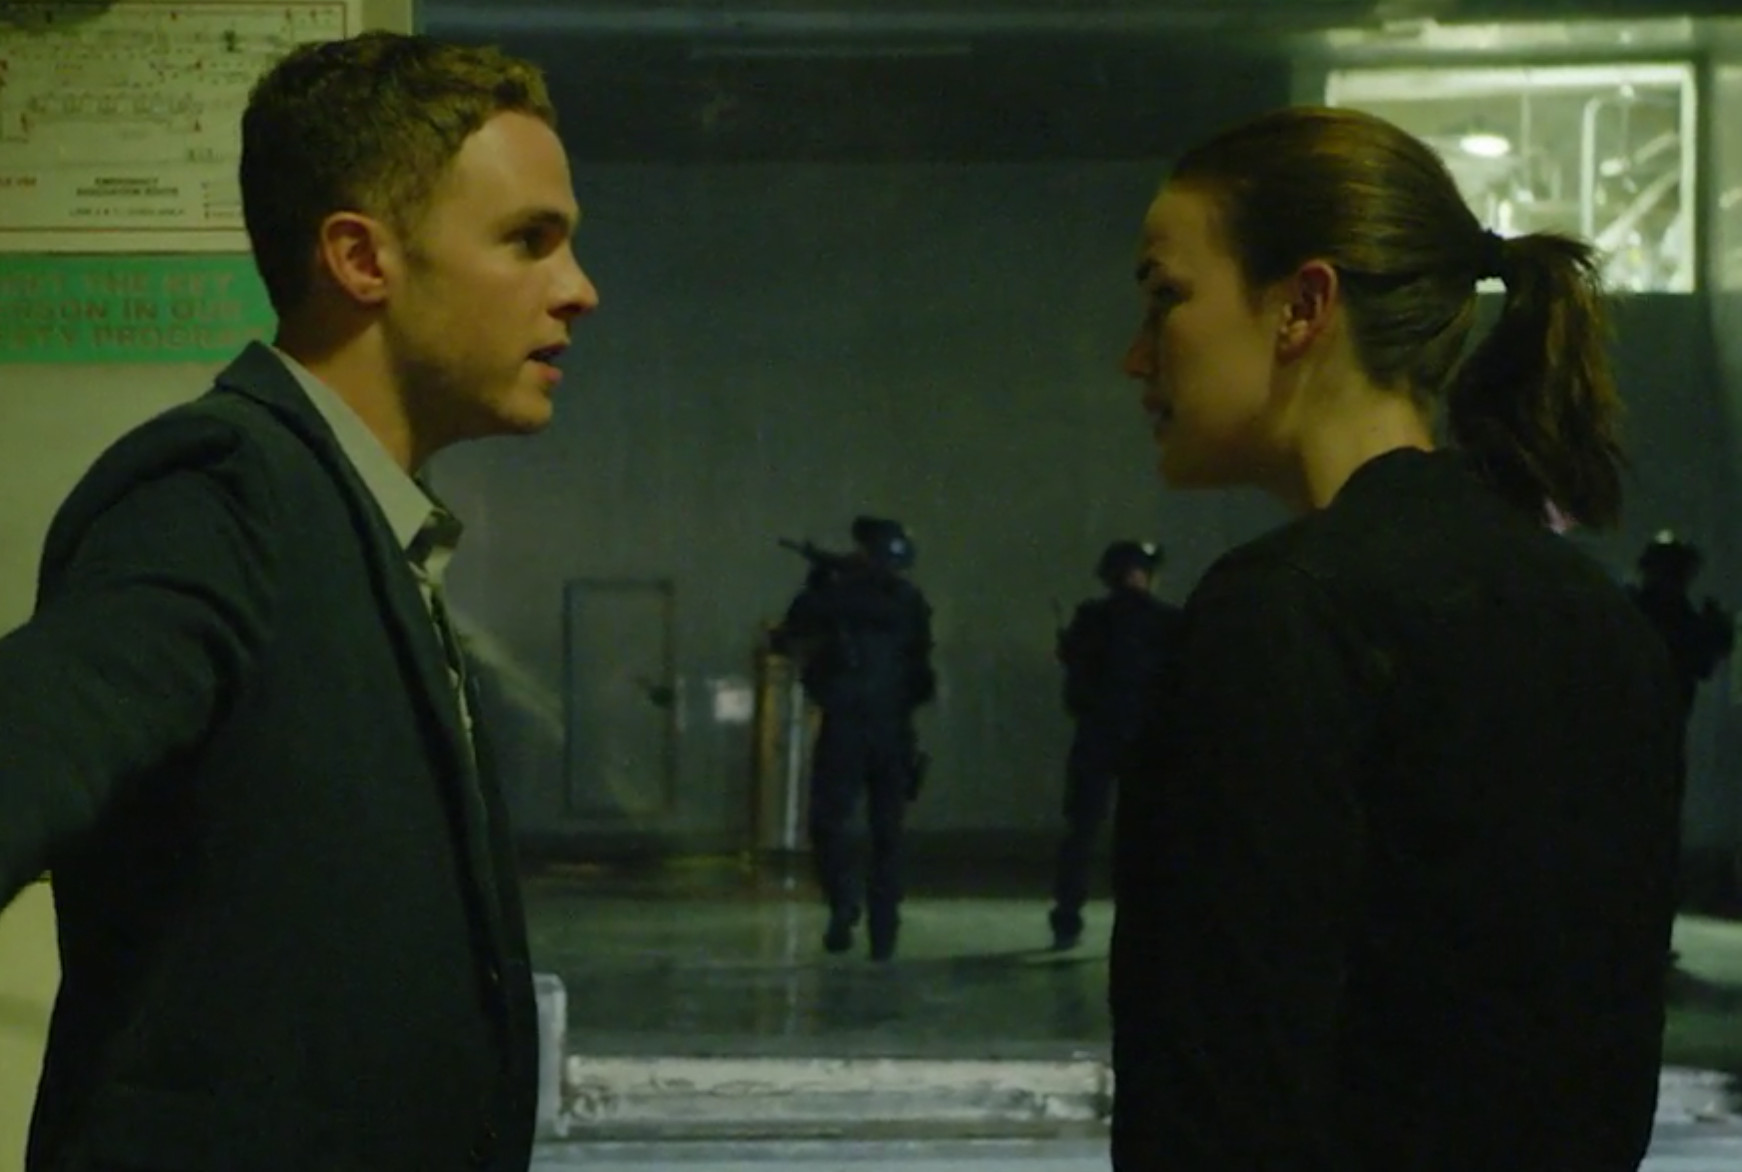 fitz agents of shield season 3. Exclusive \u0027Agents Of S.H.I.E.L.D.\u0027 Sneak Peek: The FitzSimmons Romance Hits Another Bump In Fitz Agents Shield Season 3 0